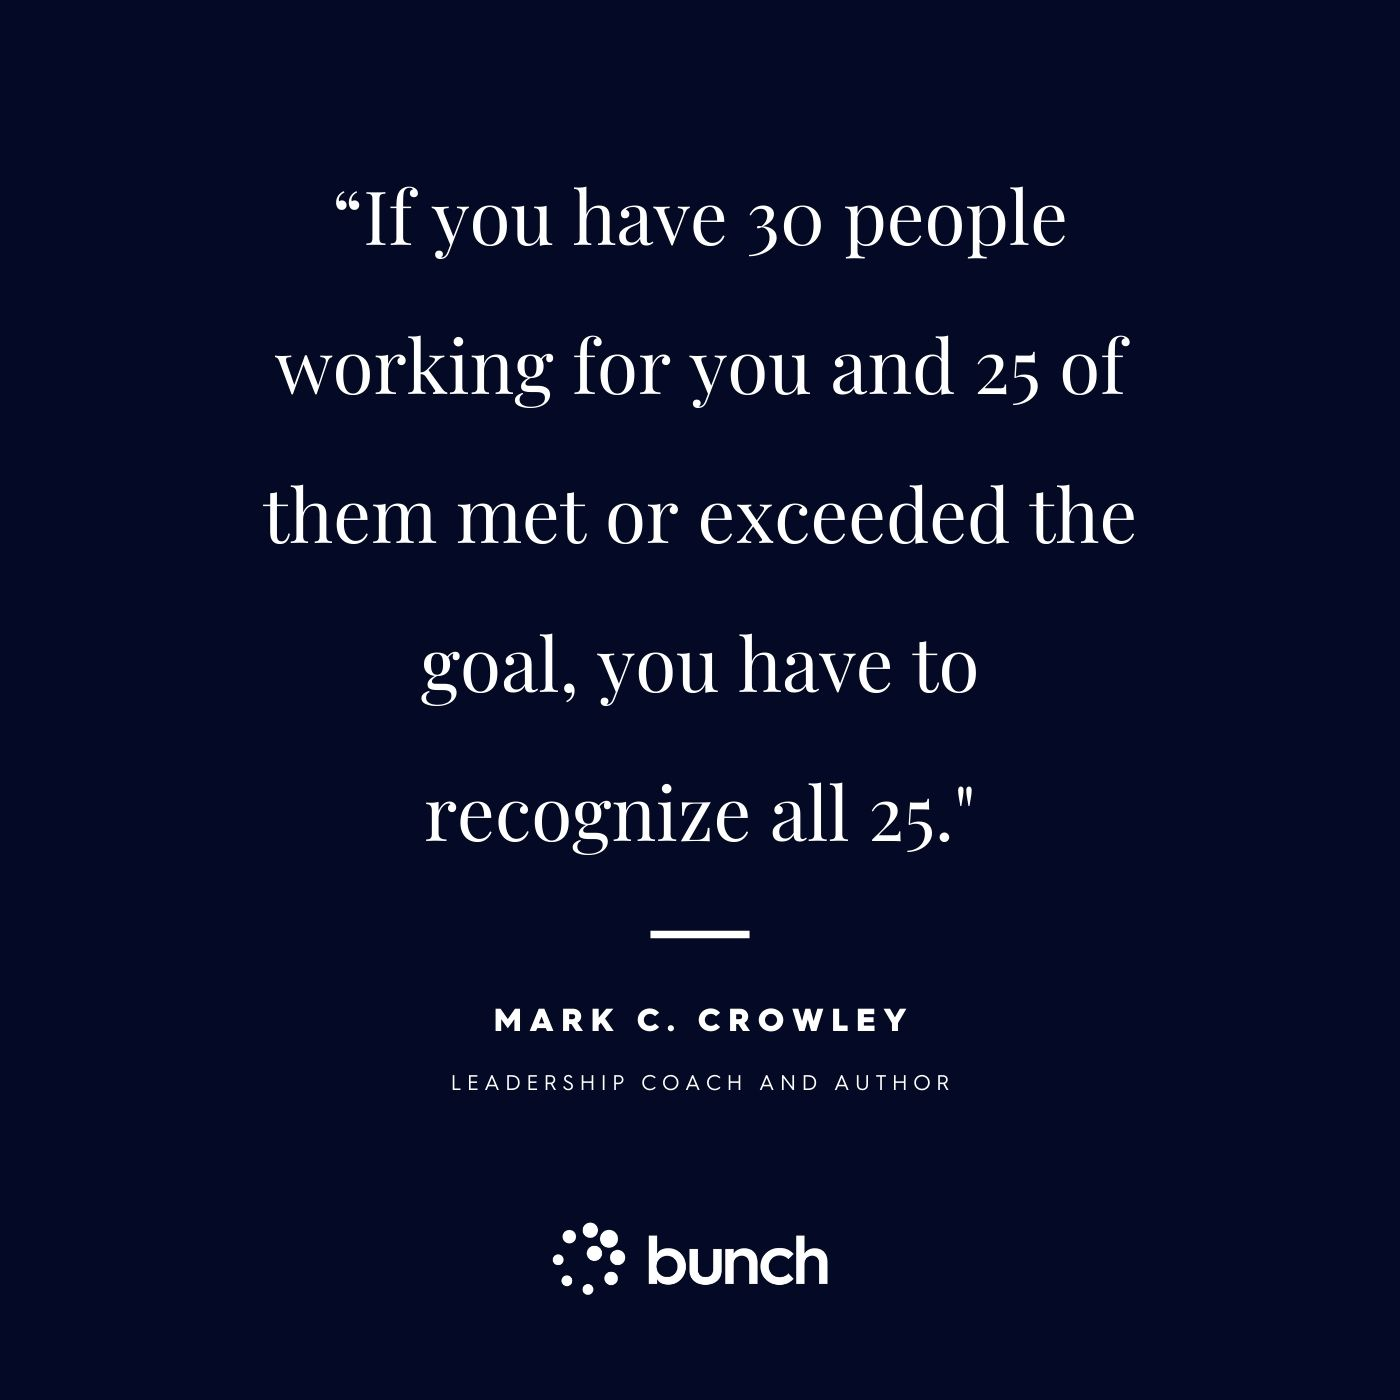 Appreciate your team with tokens of thanks. Mark C. Crowley quote on team recognition